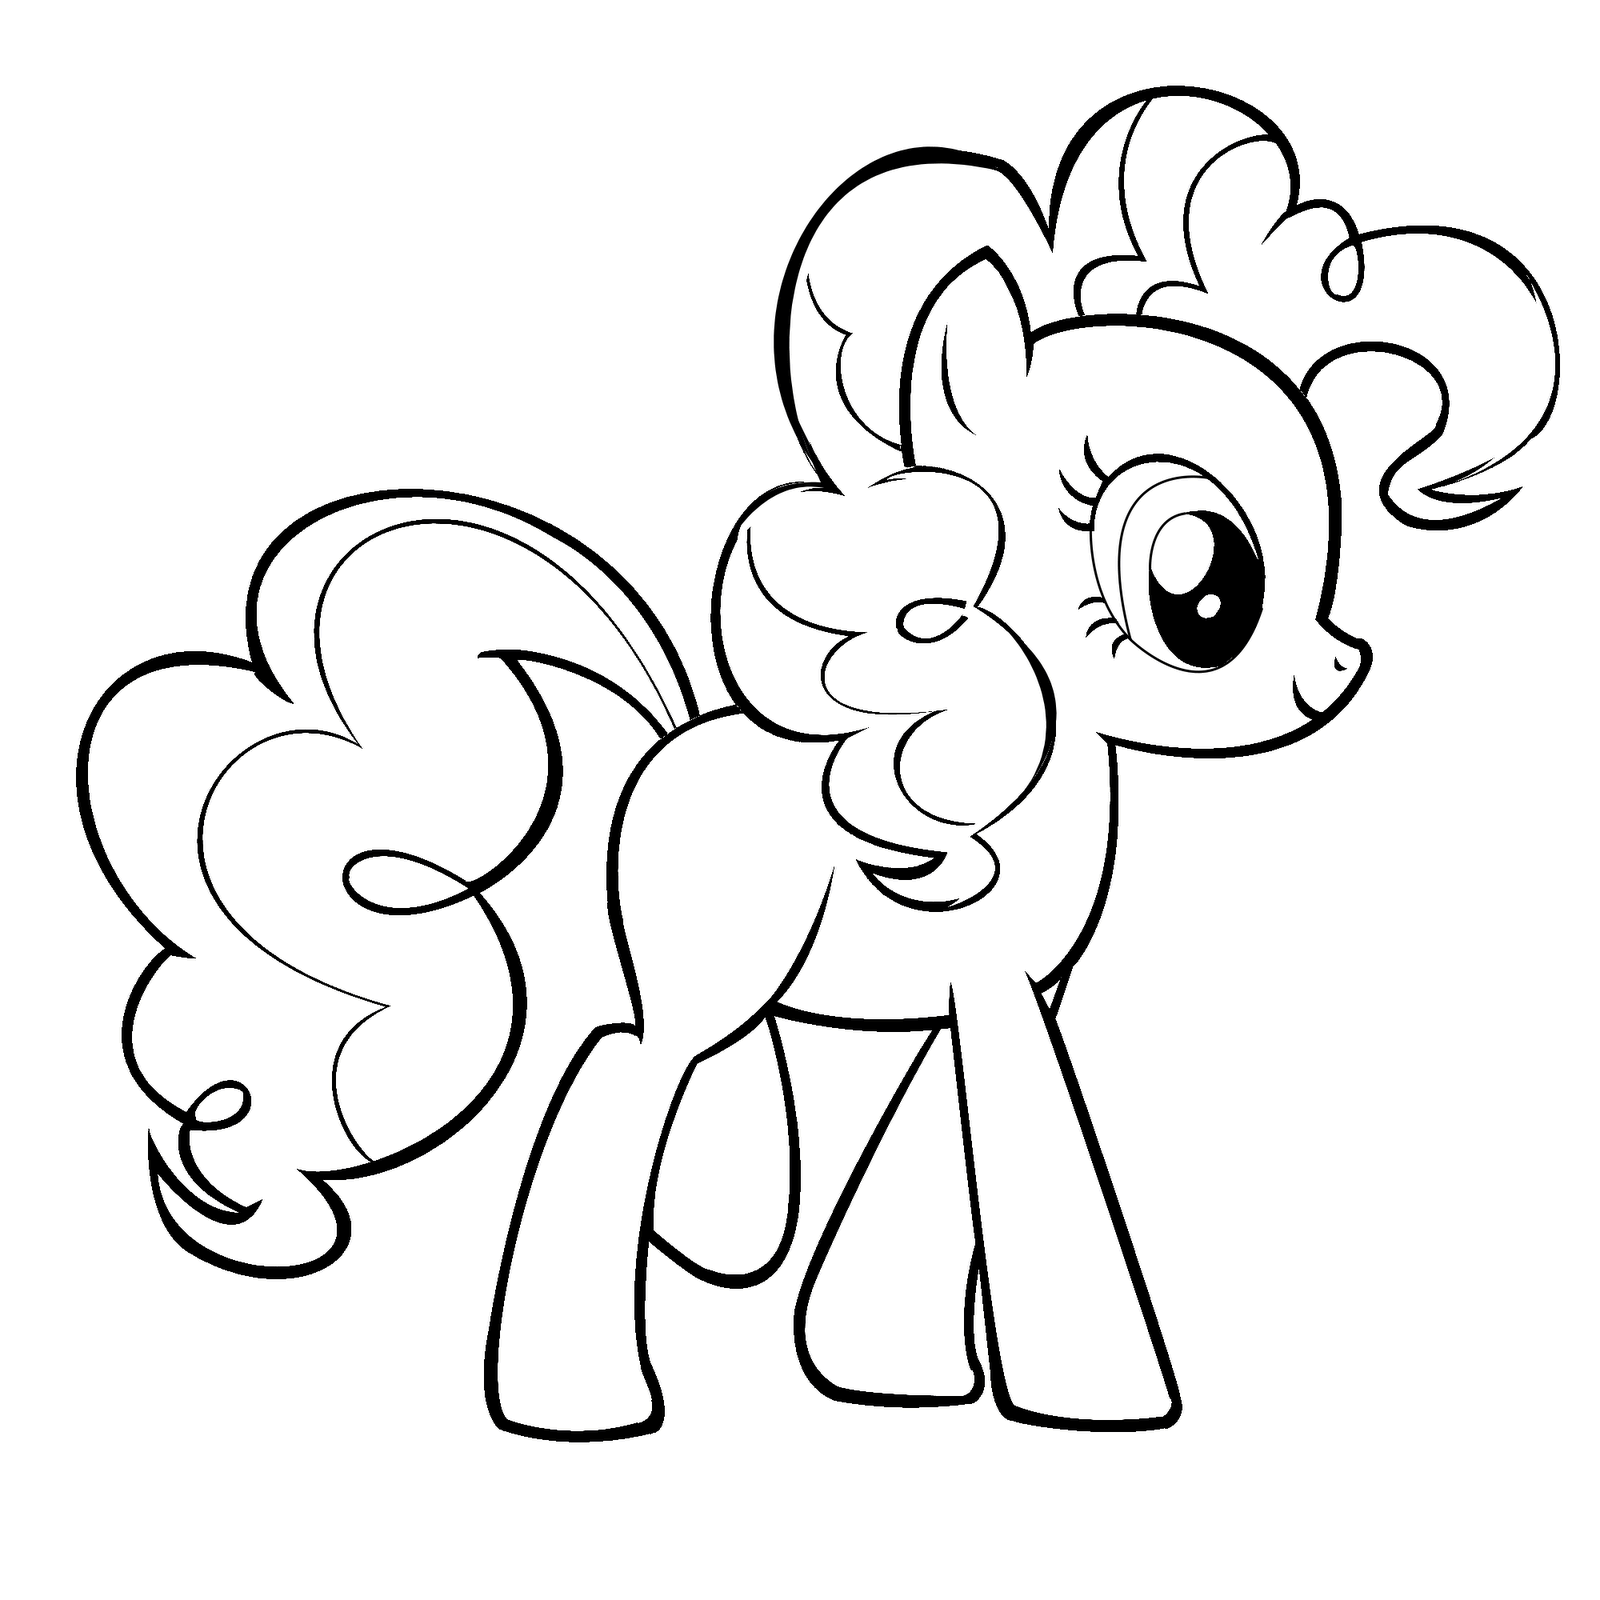 New Cute My Little Pony Coloring Pages  New Coloring Pages